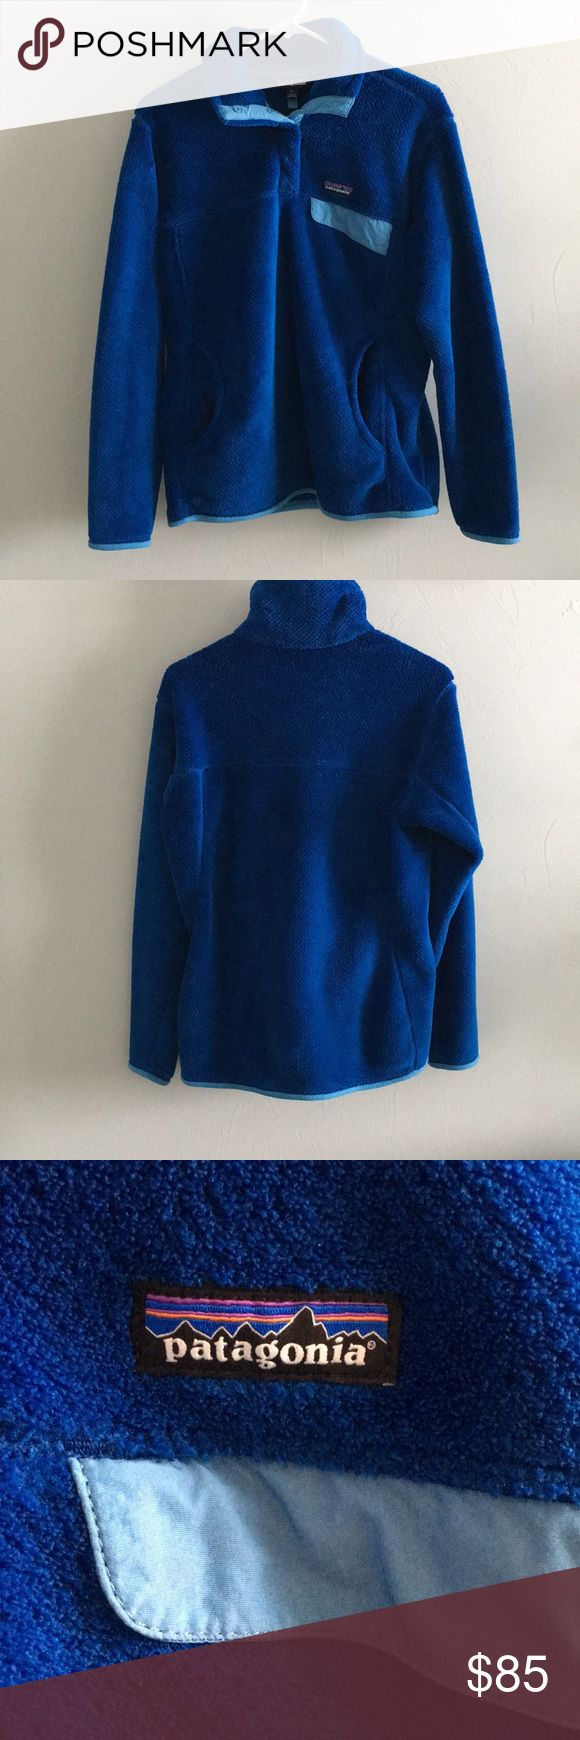 NWOT Patagonia re tool I have never worn this so it's in perfect brand new condition. Extremely soft and perfect for the winter weather. Patagonia Tops Sweatshirts & Hoodies